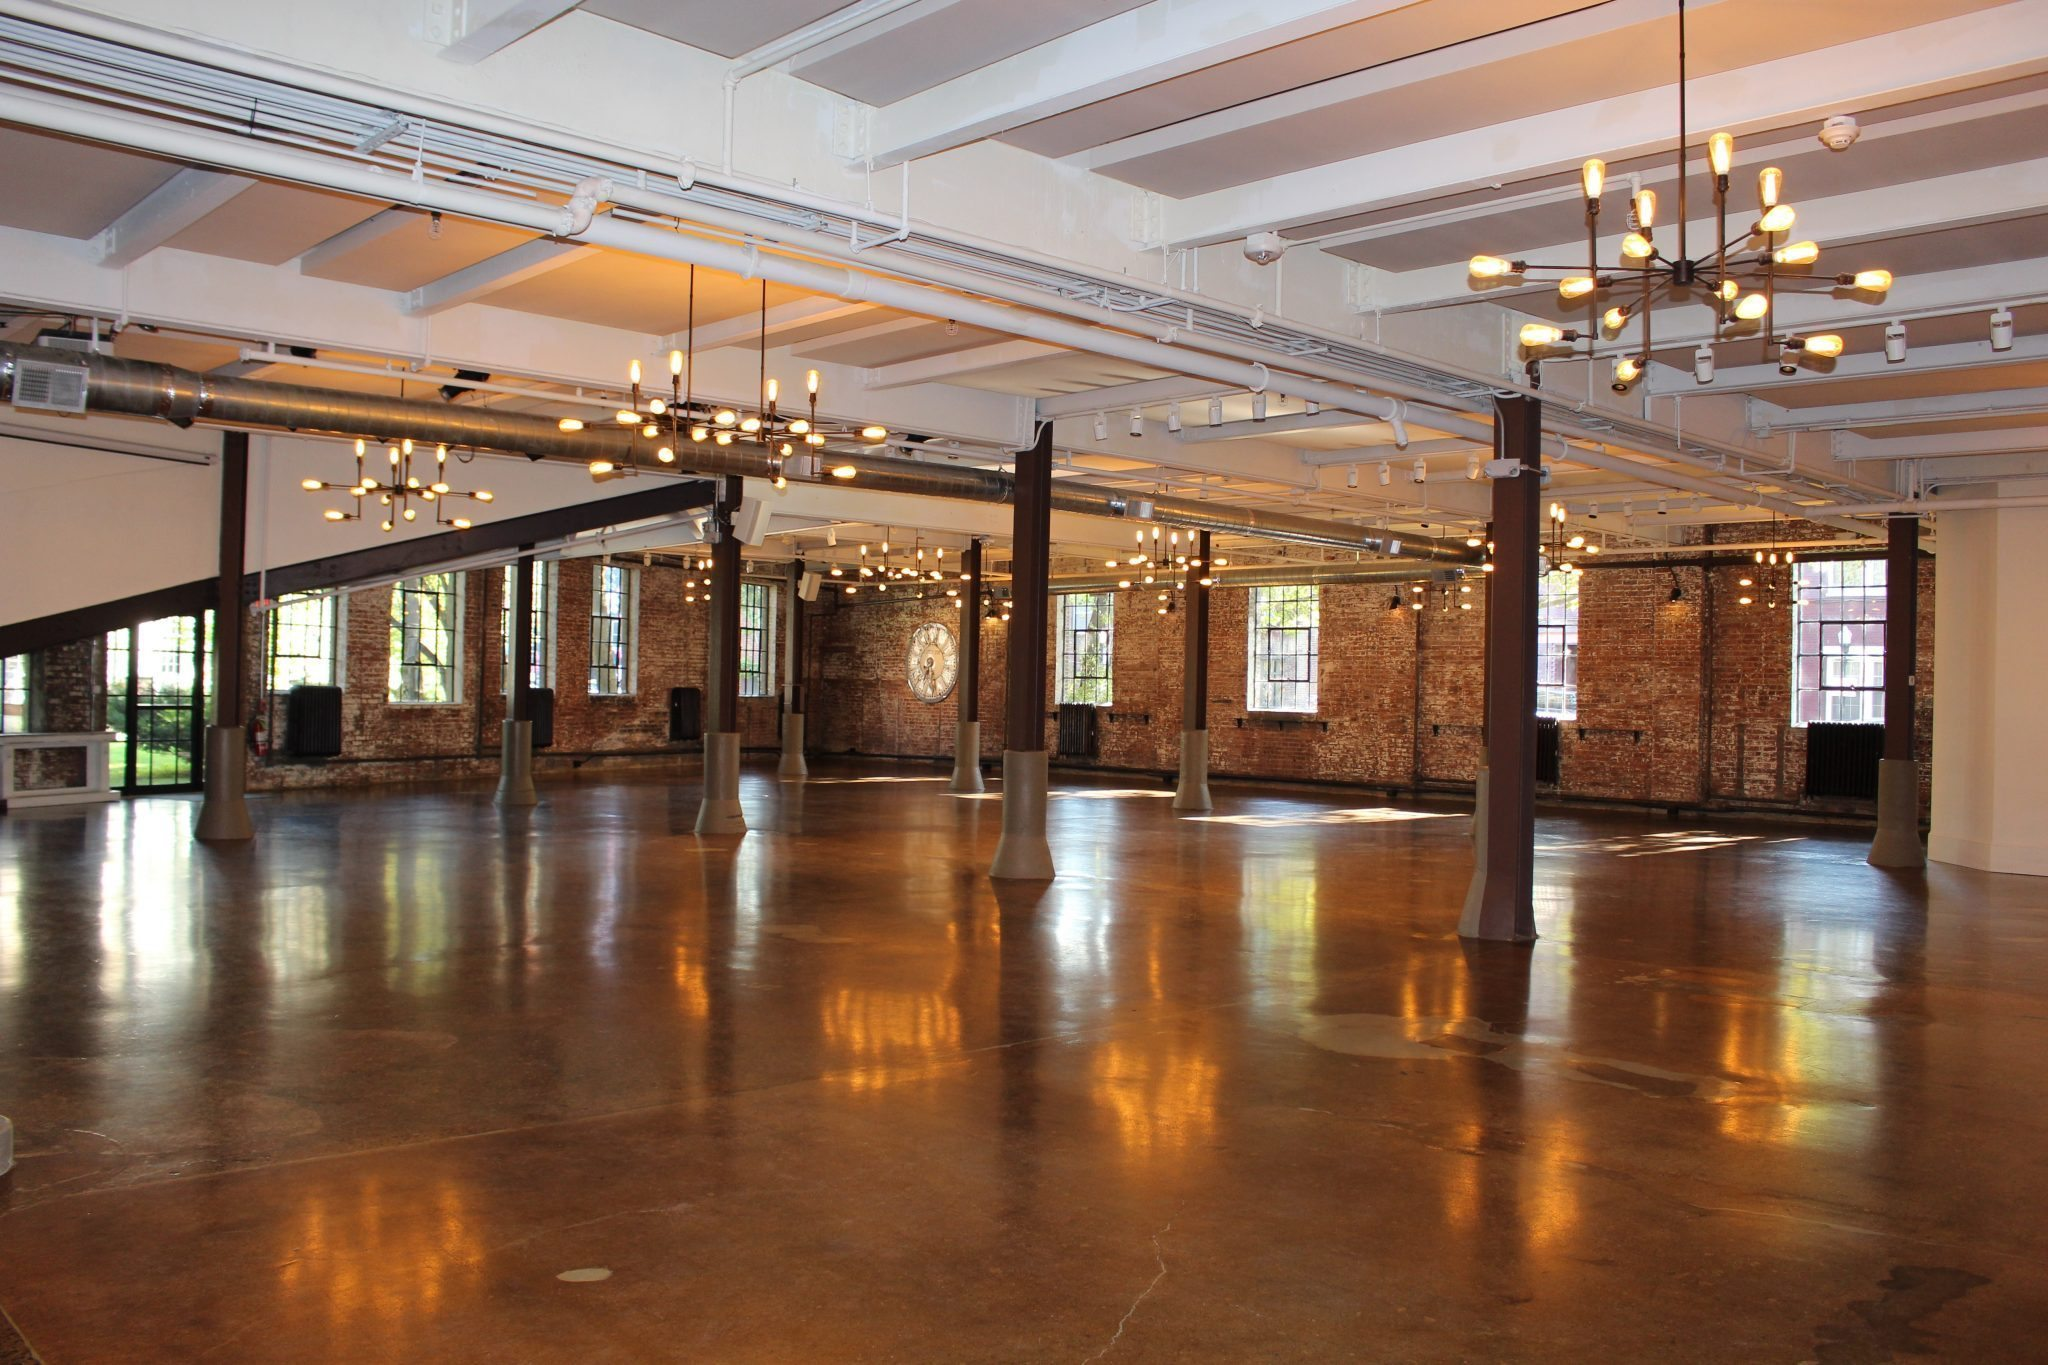 Main Space event space at Senate Garage in Greater New York